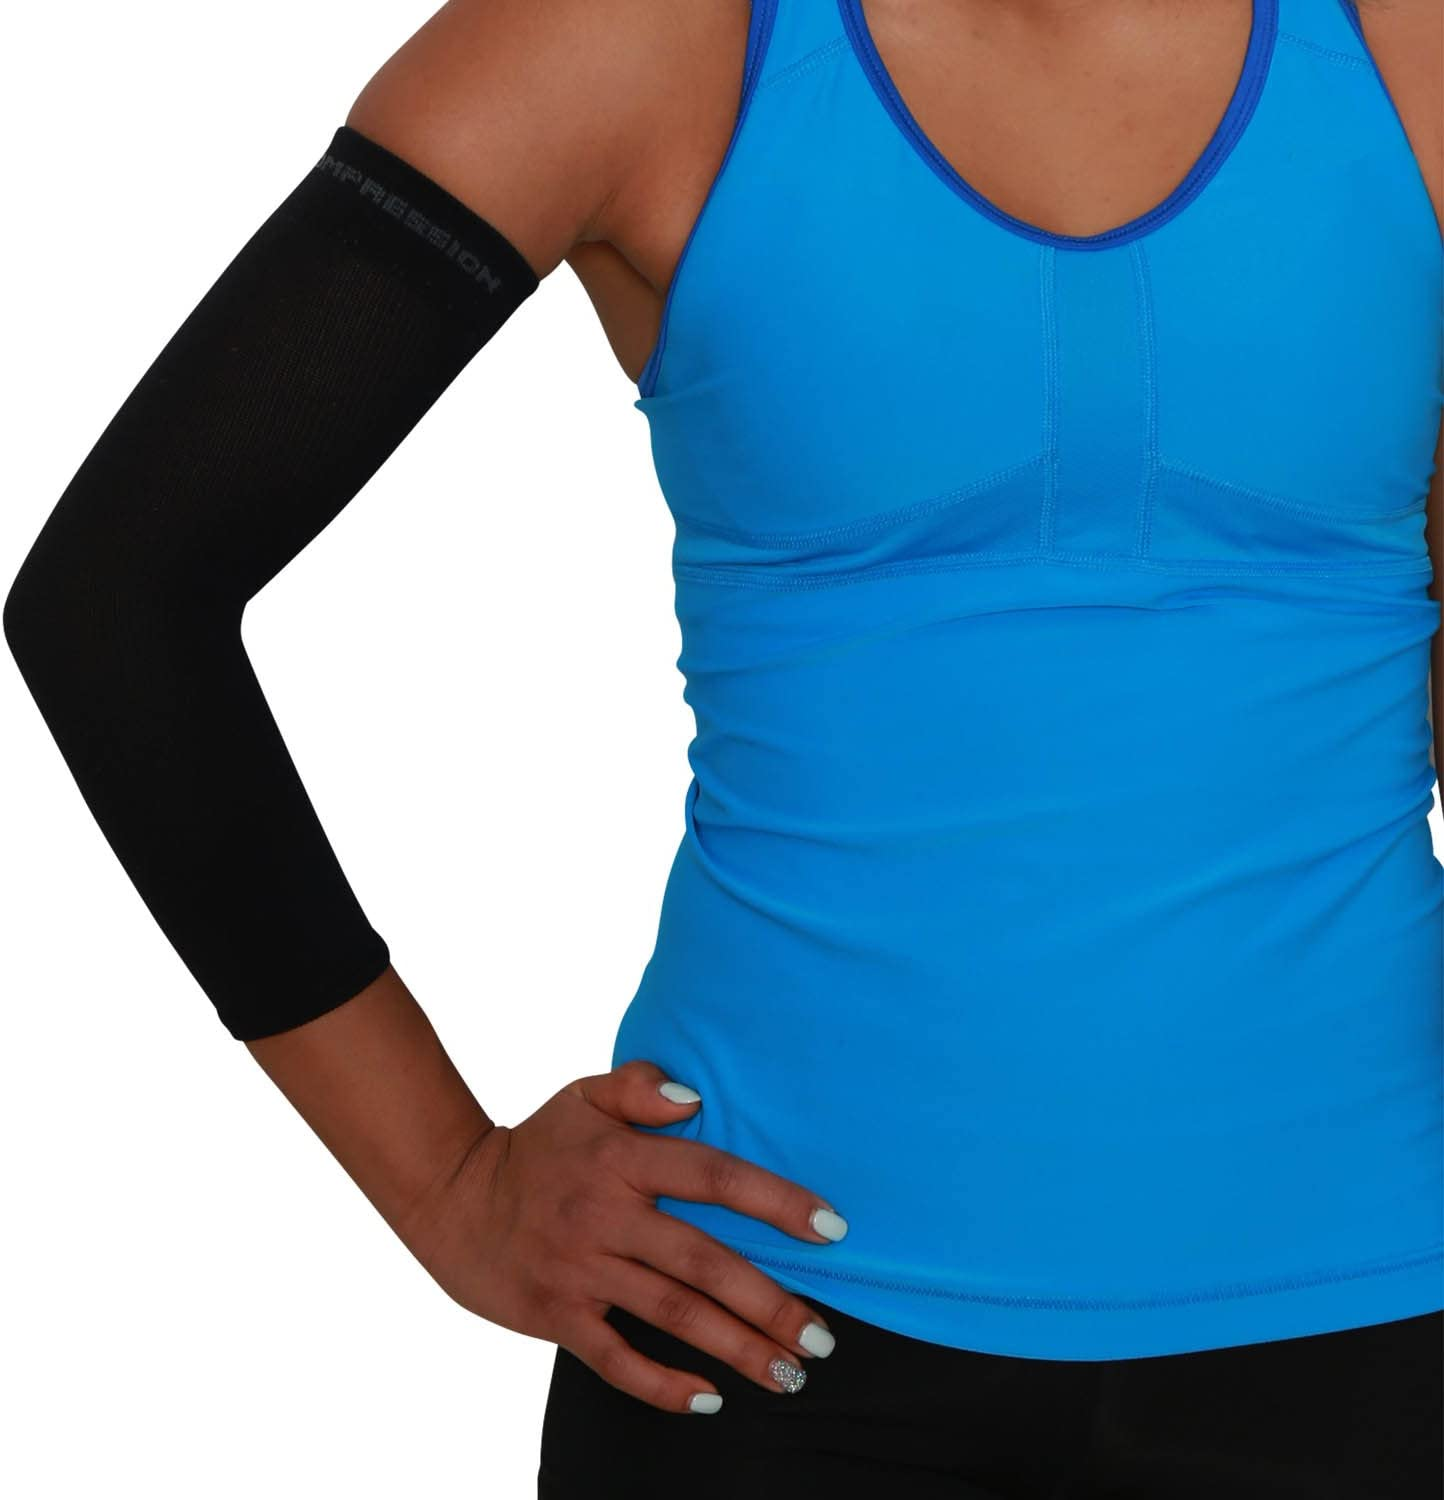 Pure Compression Elbow Limited time cheap sale Sleeve with Golfers Ten Copper Tennis Recommendation -